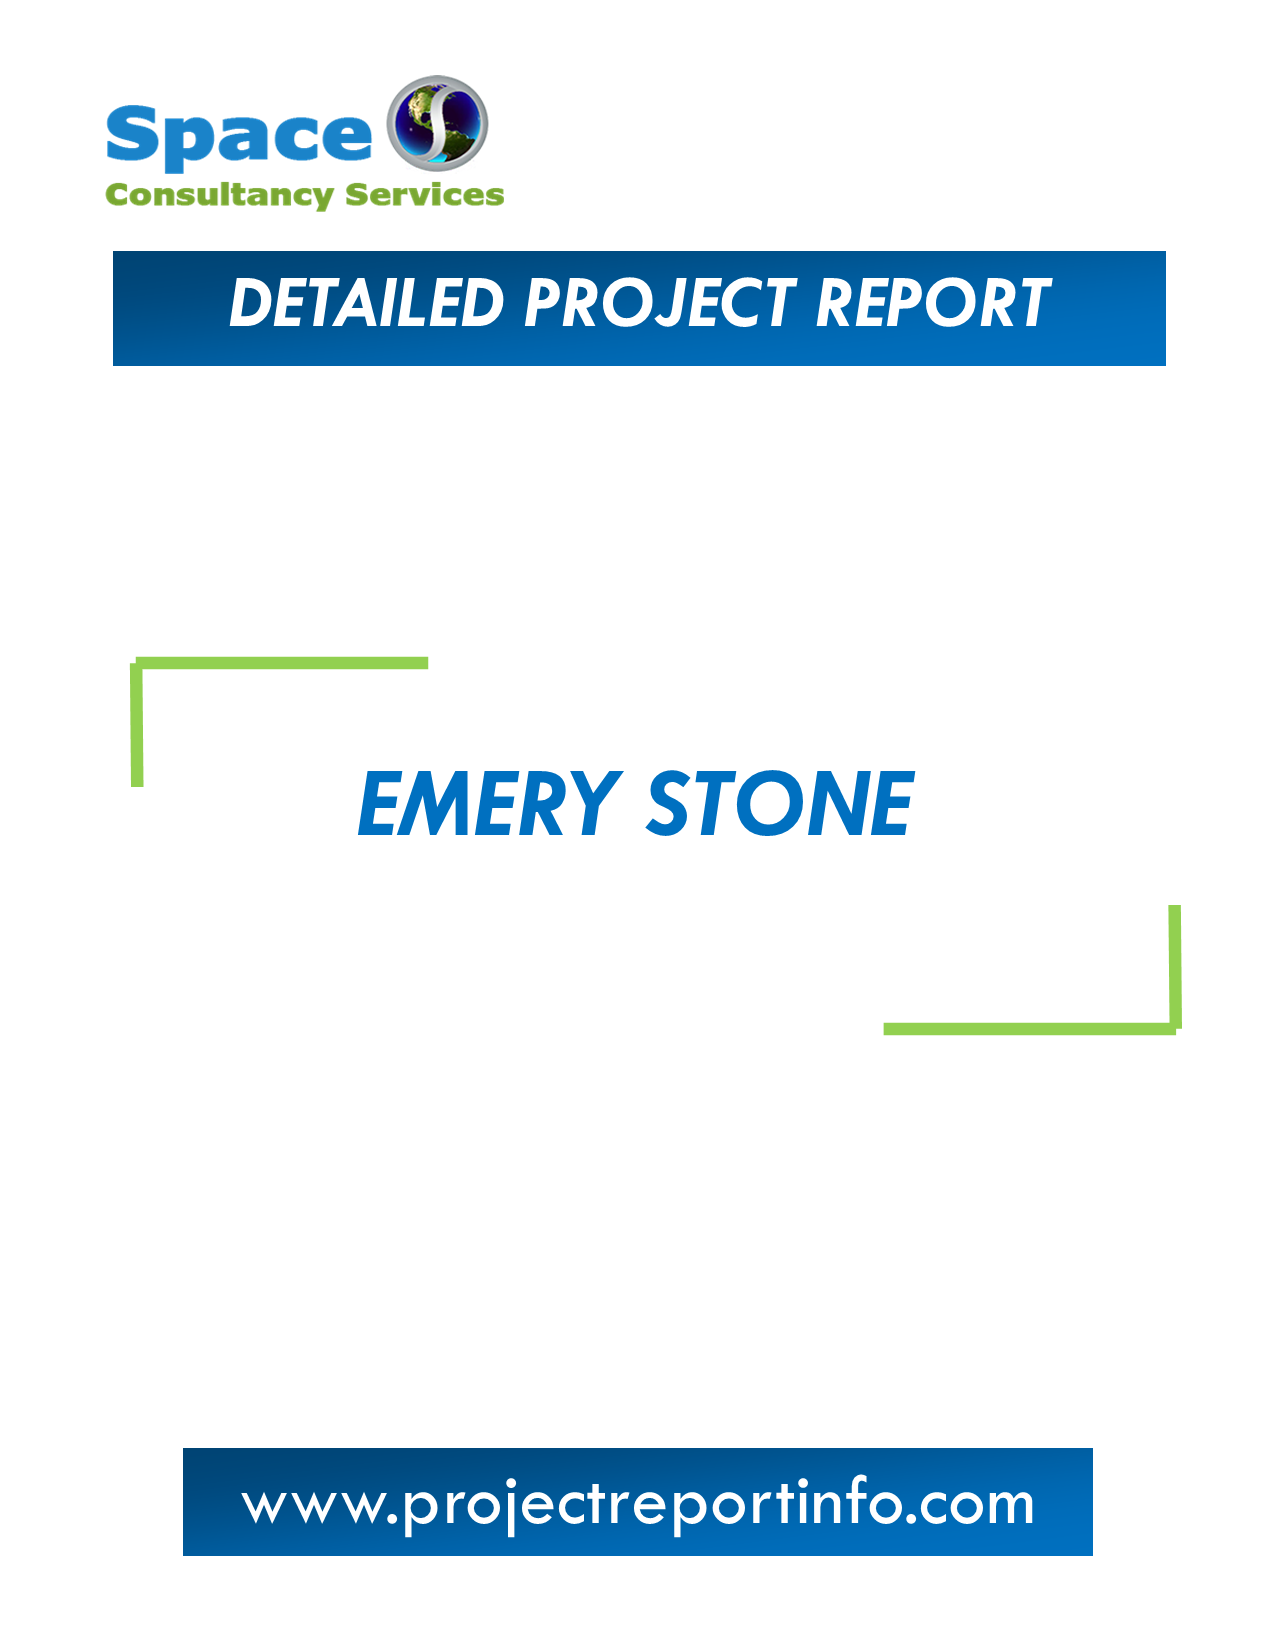 Project Report on Emery Stone Unit